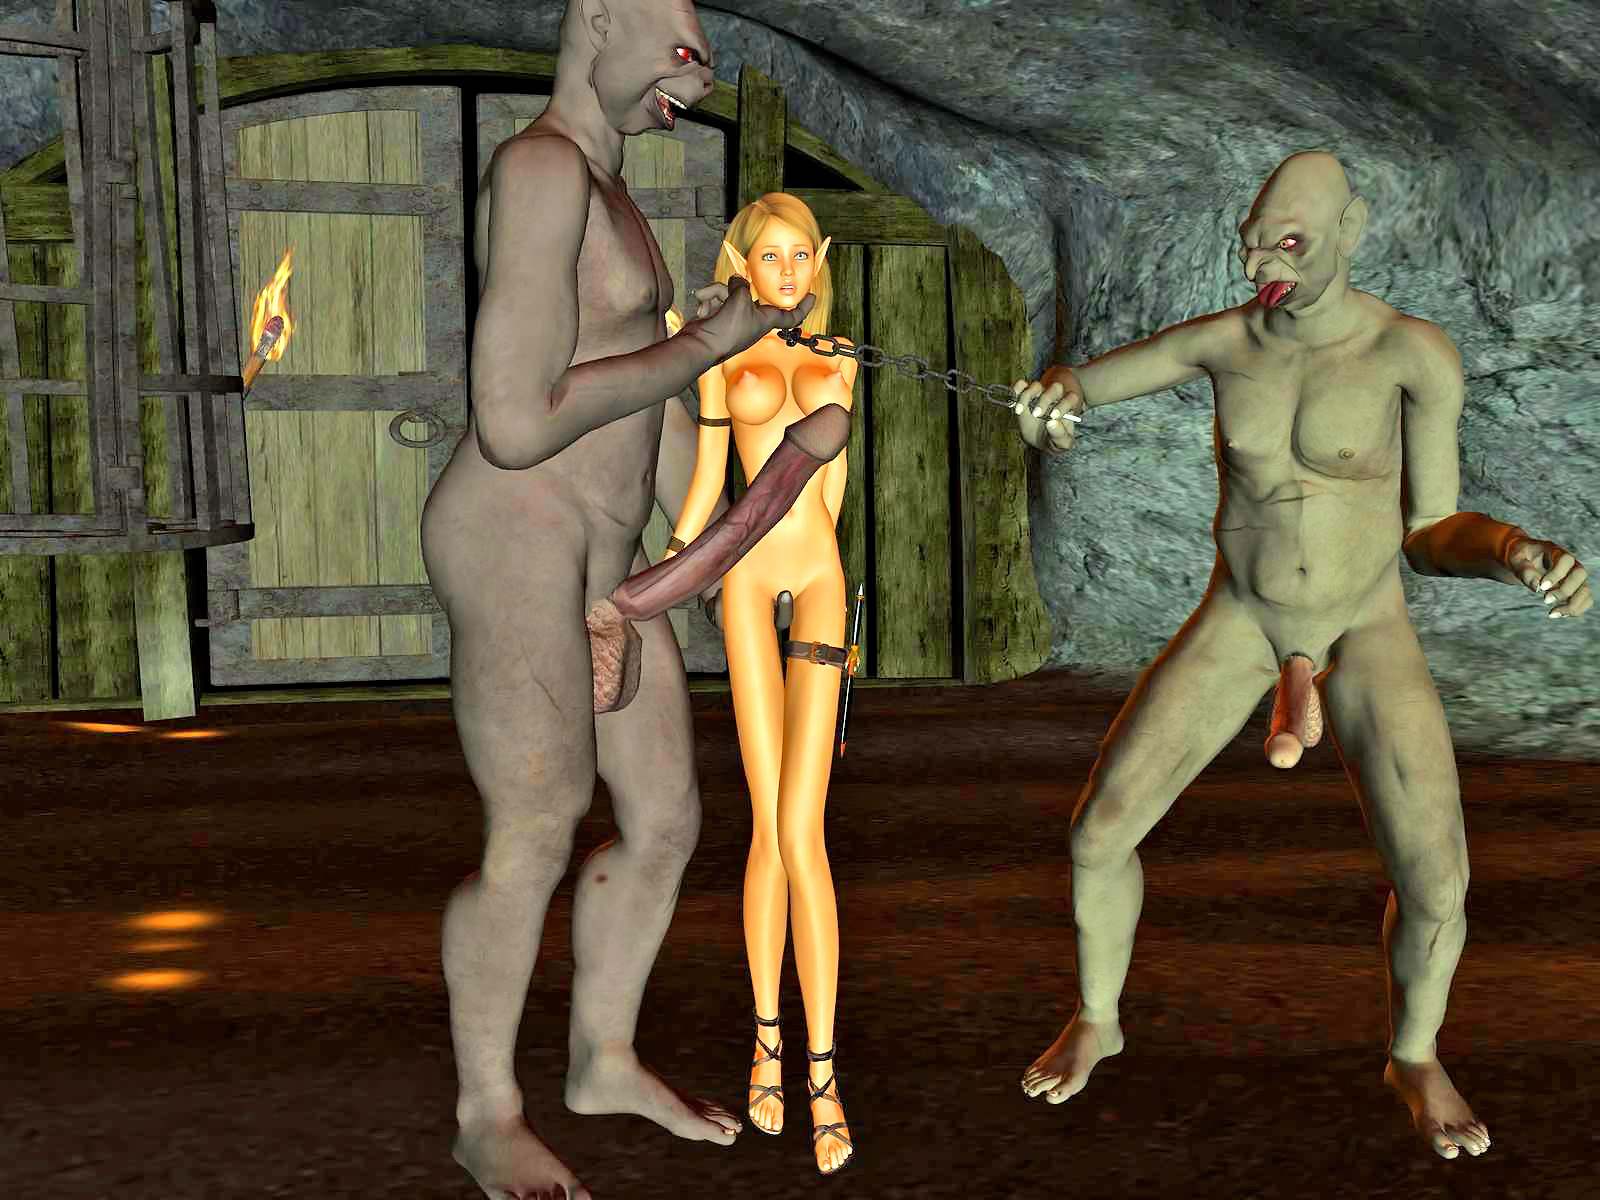 Elf princess captured abused nude images